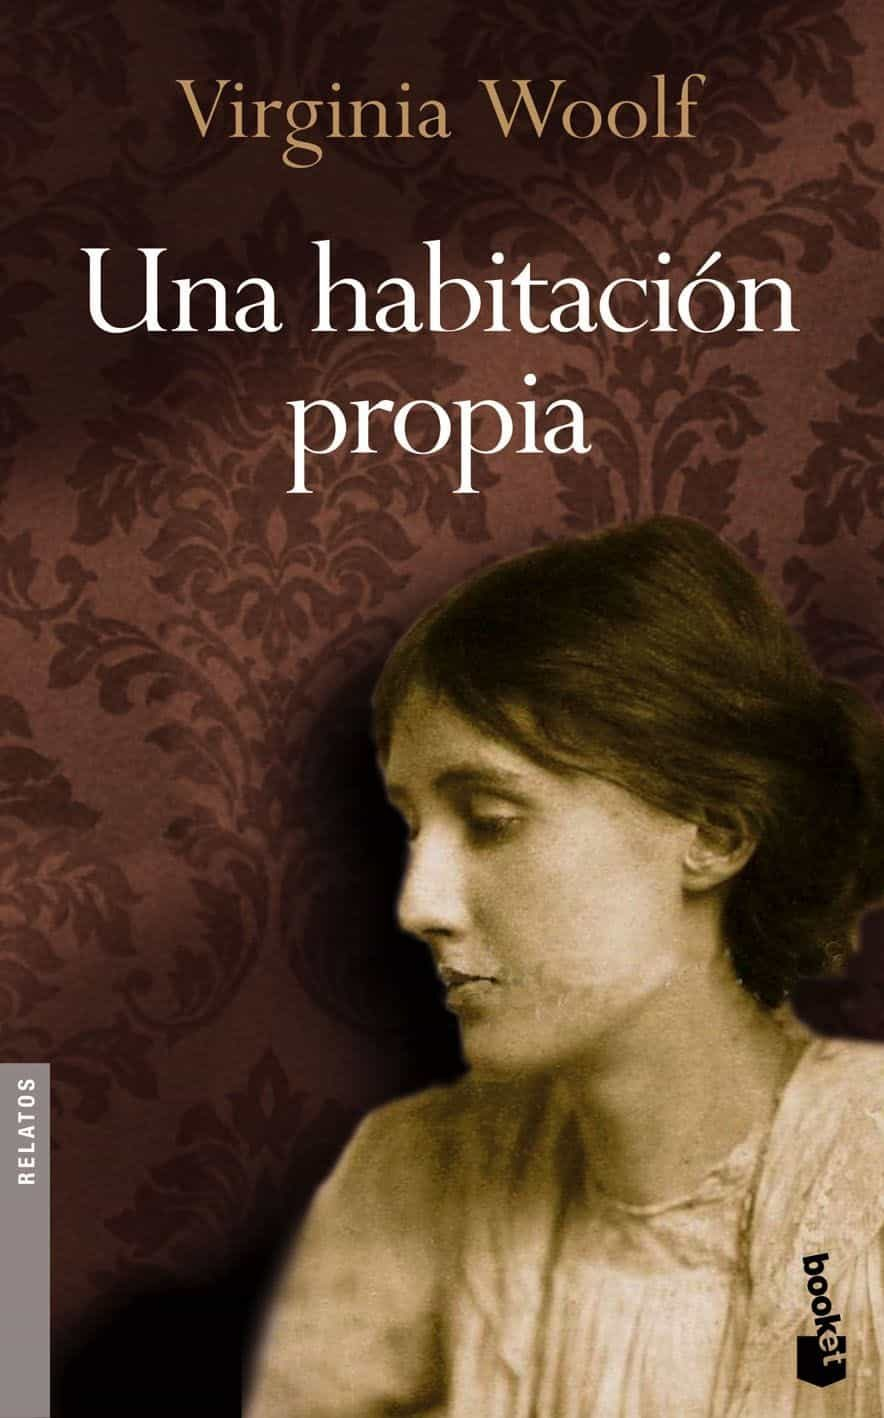 una habitacion propia-virginia woolf-9788432217890